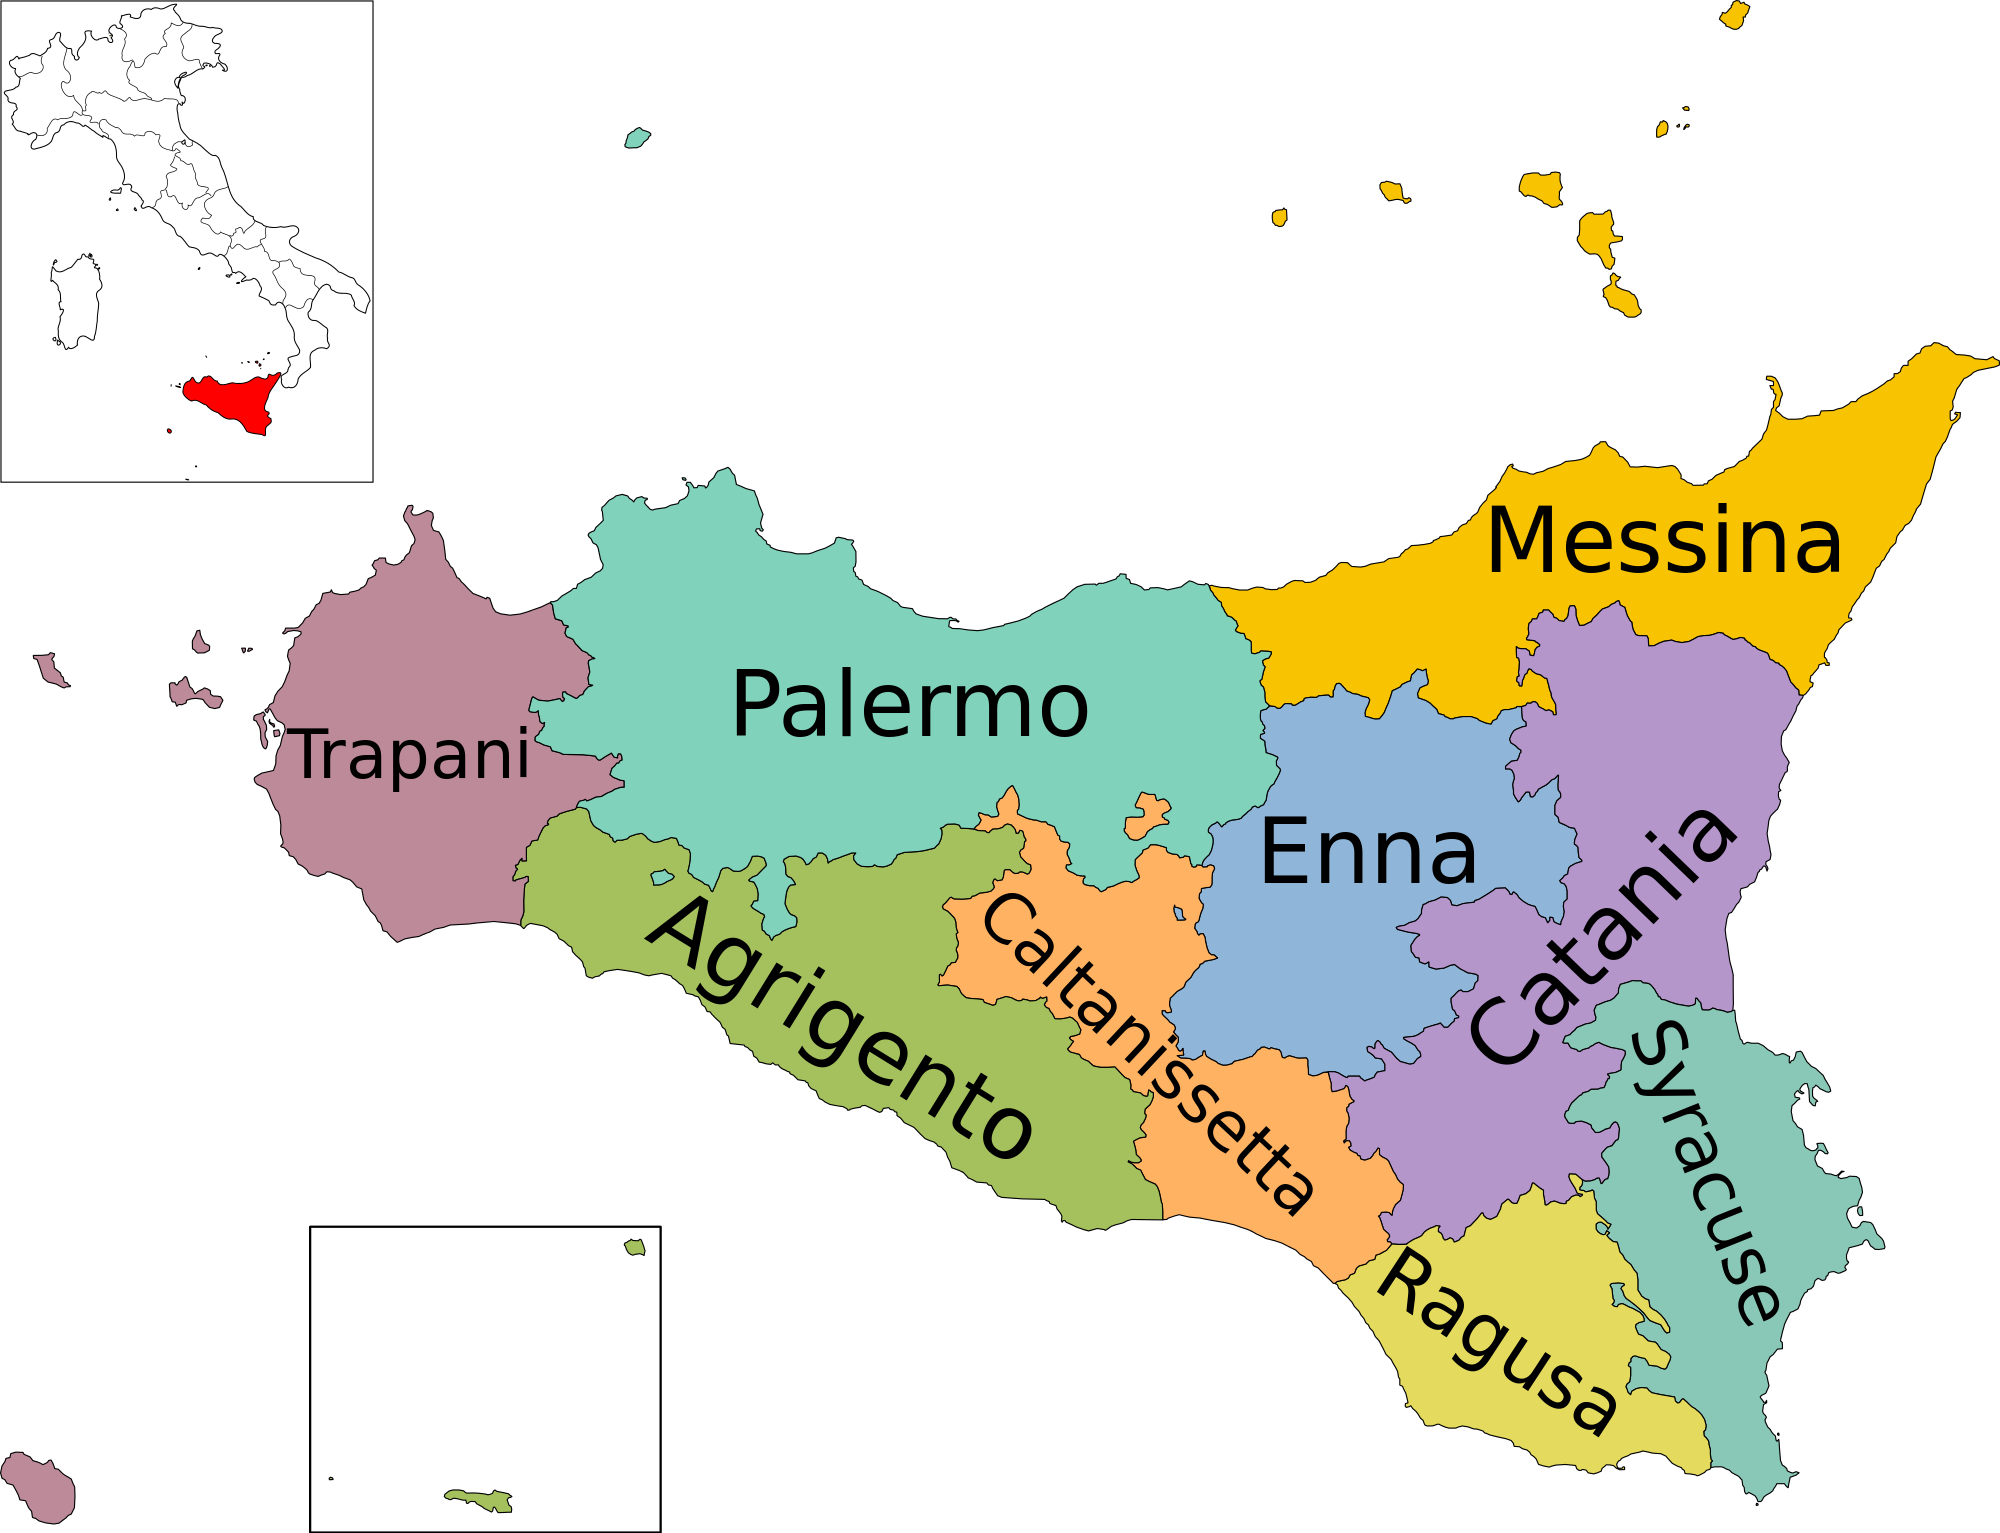 Cartina Sicilia Trapani.File Map Of Region Of Sicily Italy With Provinces En Svg